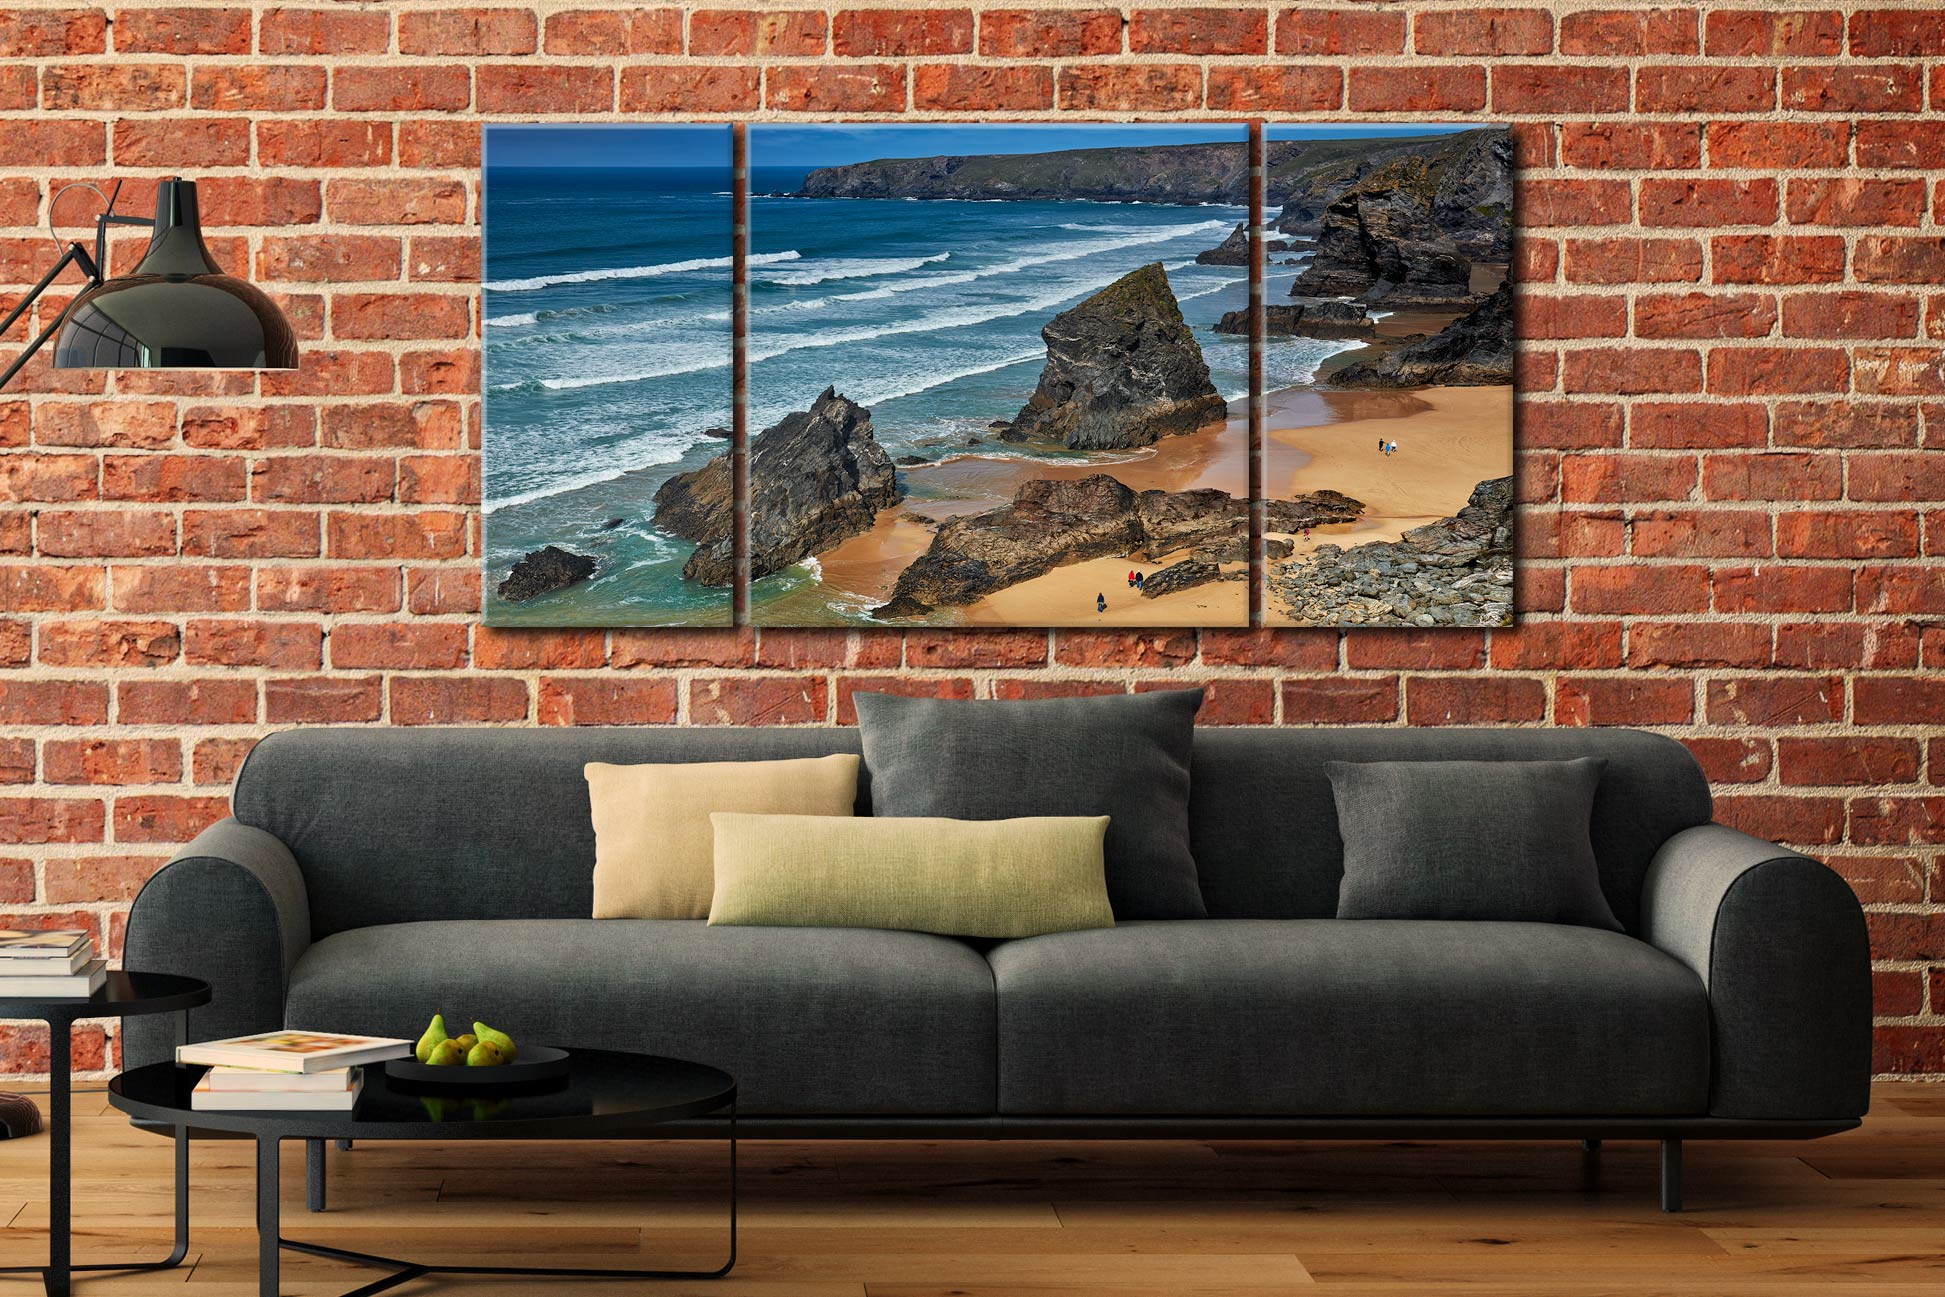 Bedruthan Steps Beach Rocks - 3 Panel Wide Centre Canvas on Wall